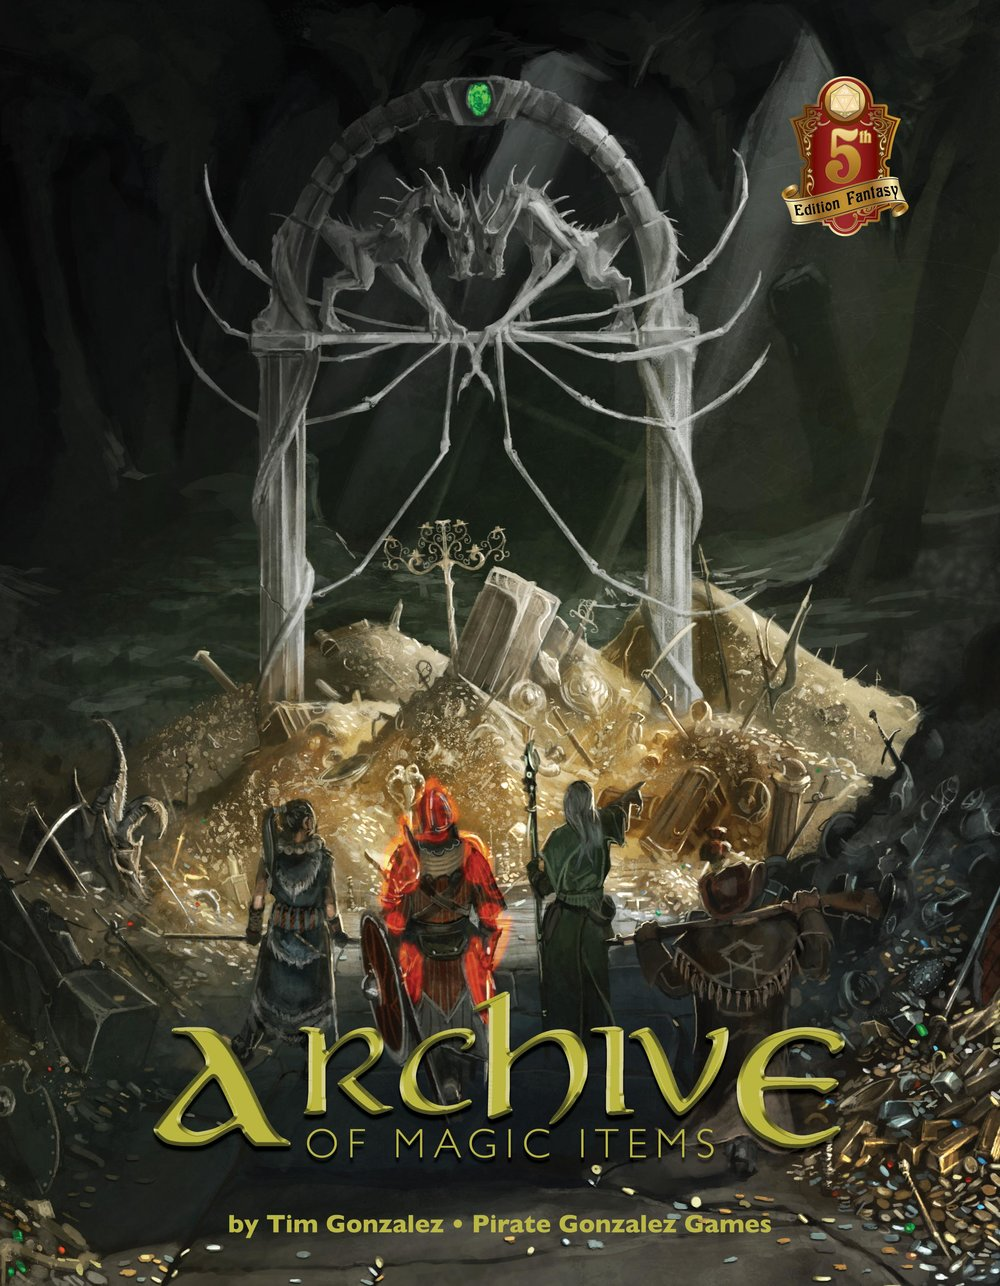 ArchiveCover.jpg